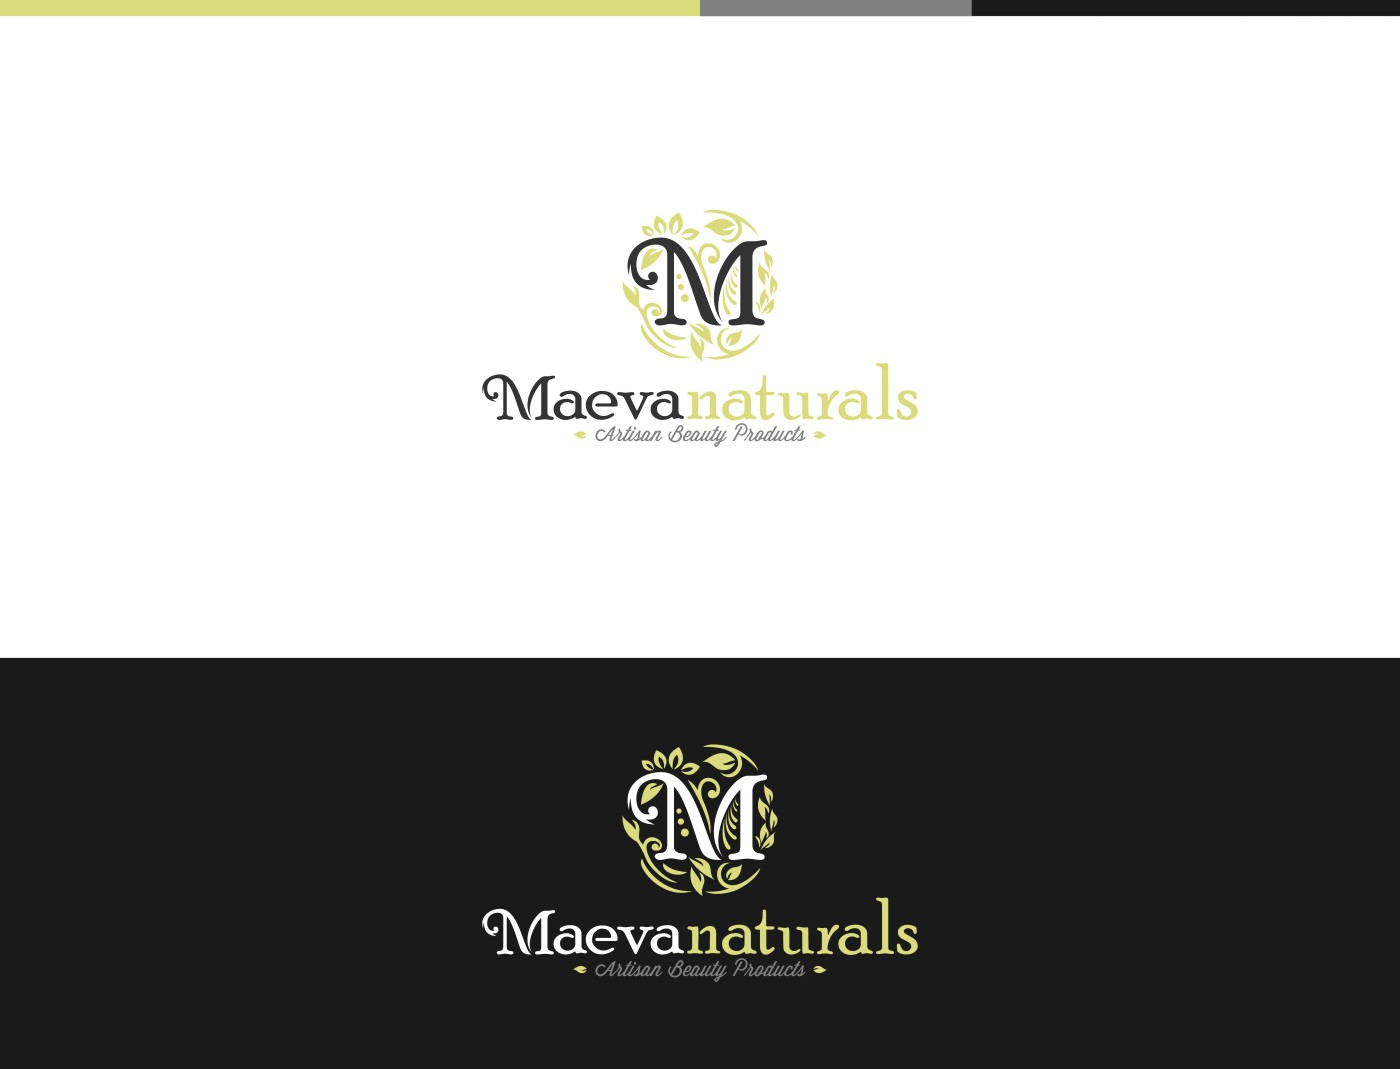 create a logo for a vintage anthropologie type natural soap & beauty product for Maeva Naturals